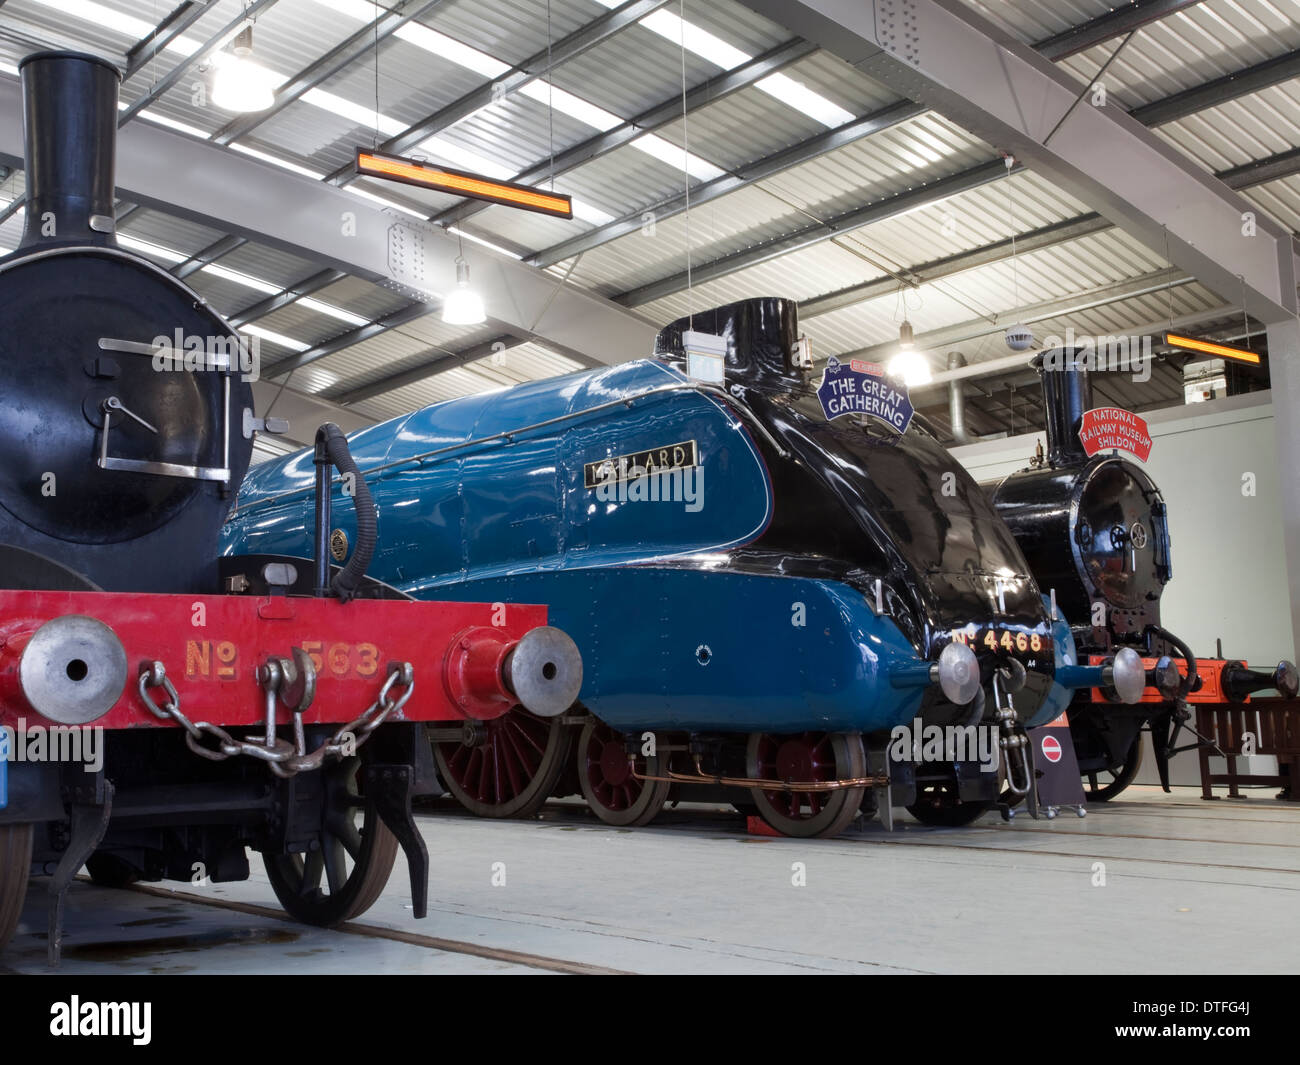 The 'Mallard' Class A4 steam locomotive, among others, at the National Railway Museum, Shildon - Stock Image